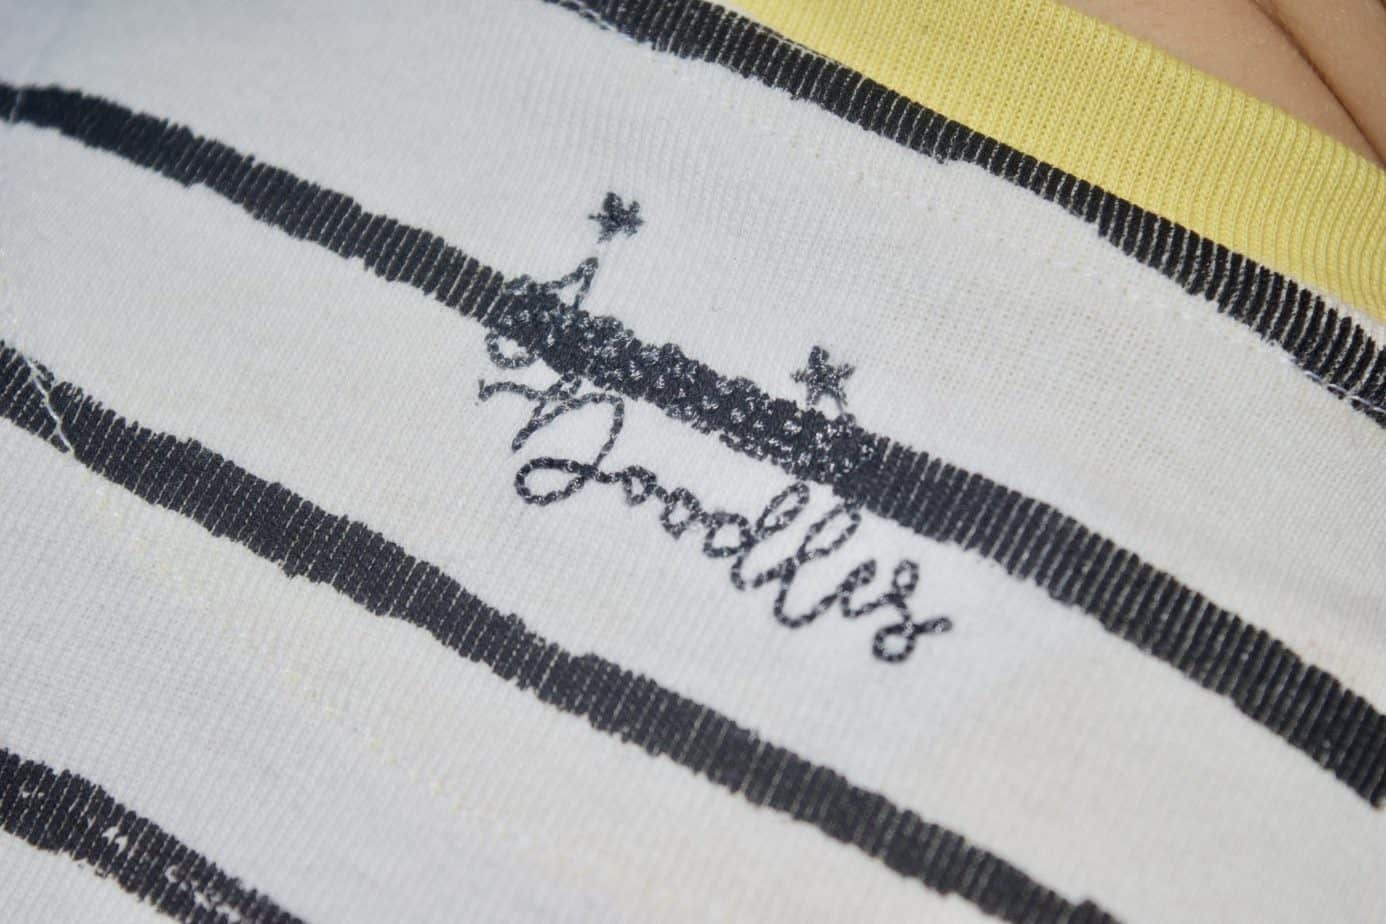 Close up of Jammie doodles logo printed on the back of the top